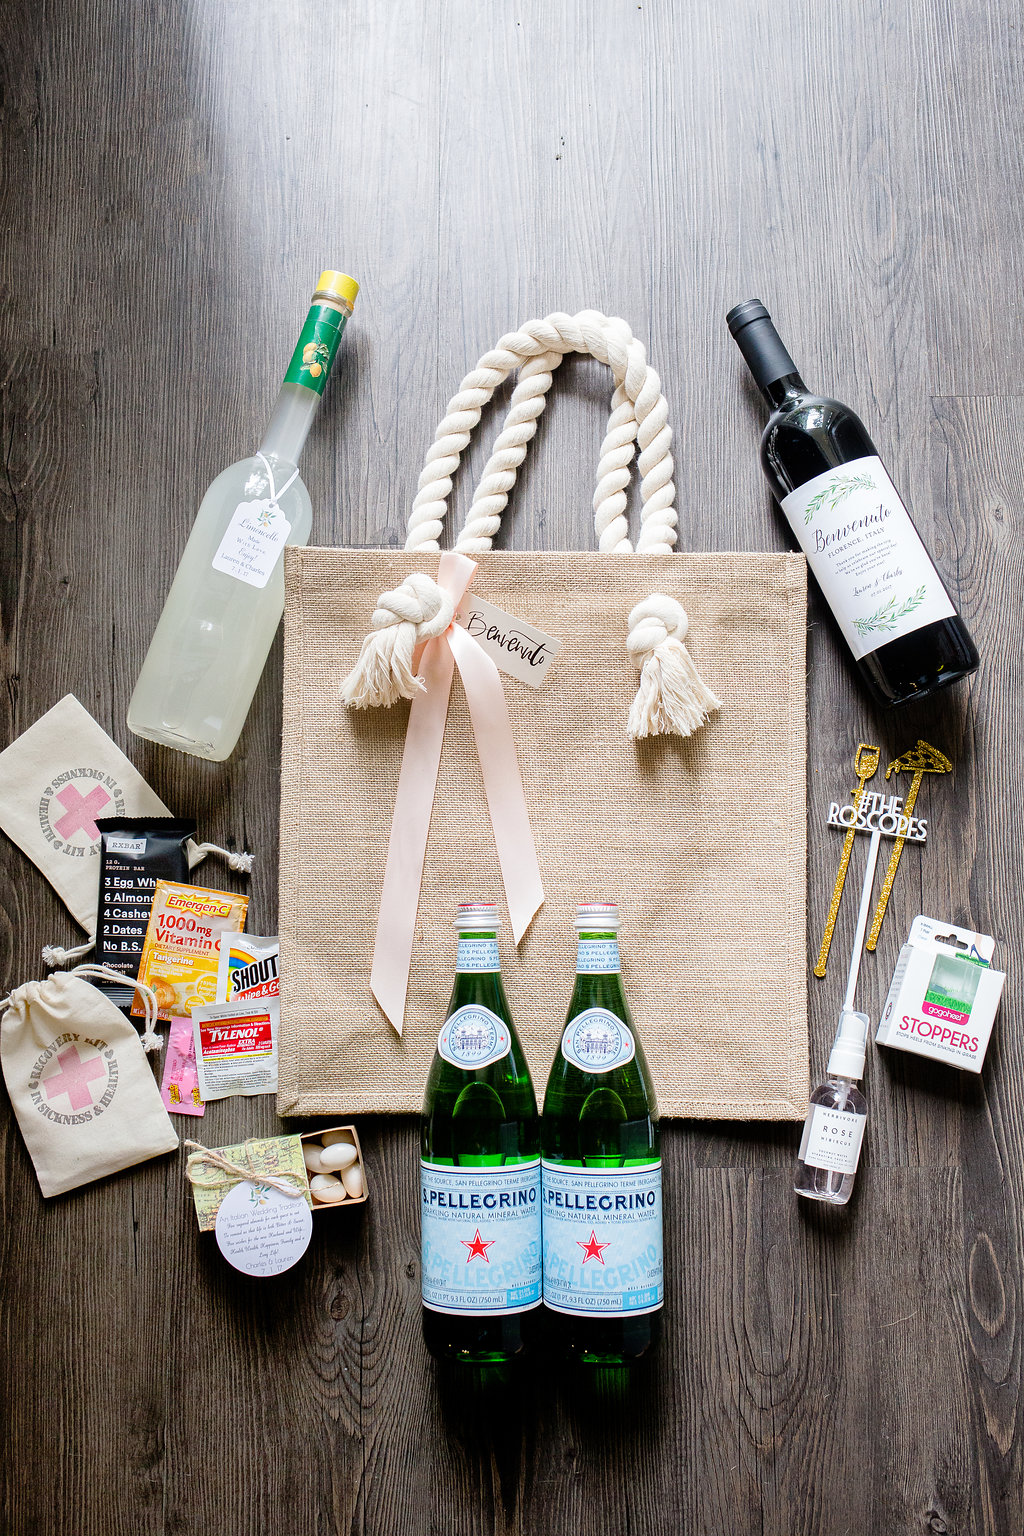 Wedding welcome bags a lo profile wedding welcome bags sharing ours for our italy destination wedding tips on what to junglespirit Image collections